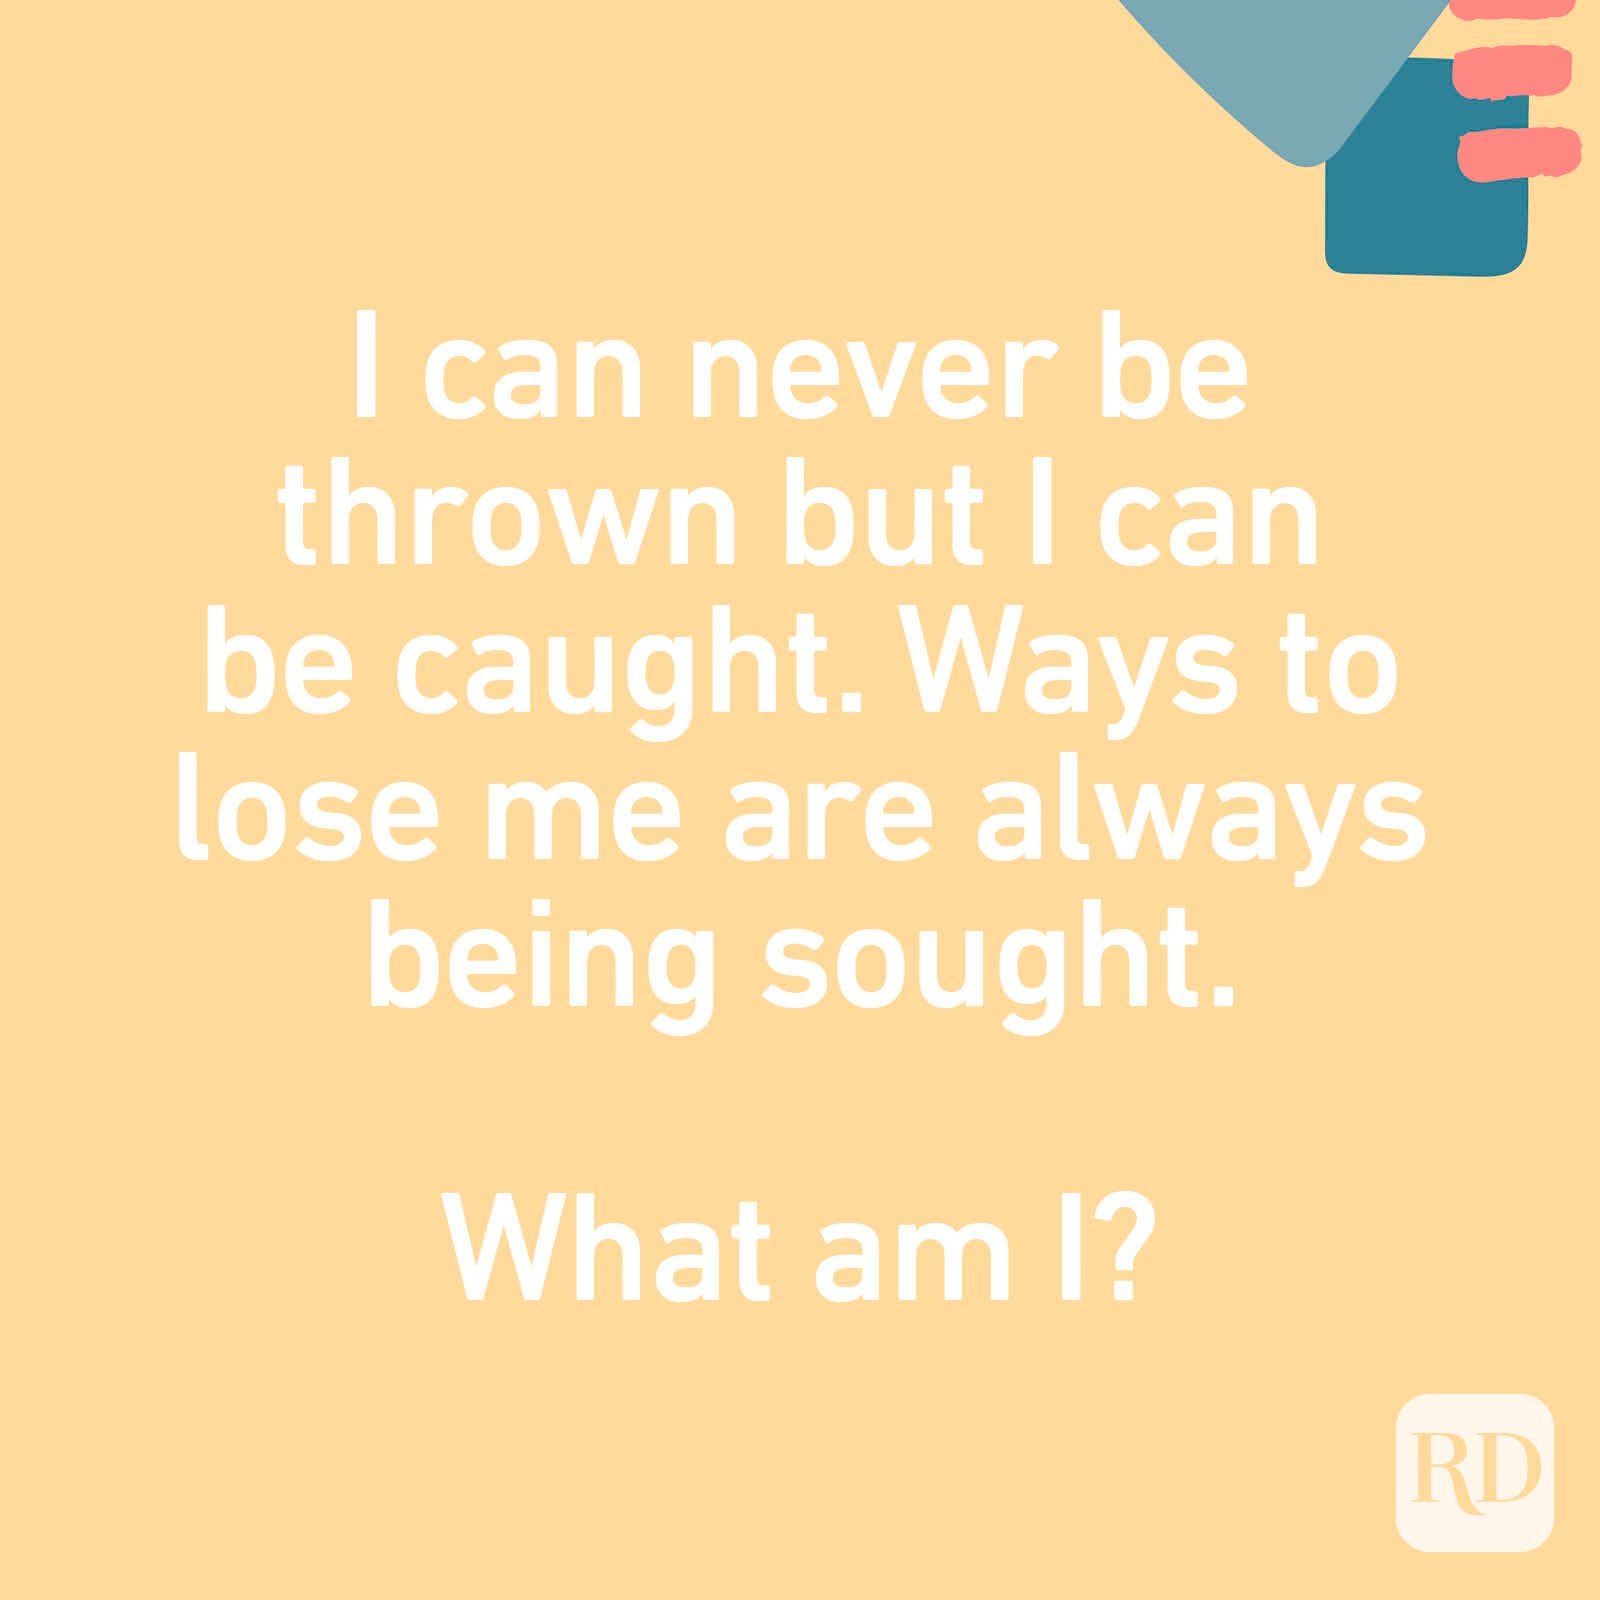 I can never be thrown but I can be caught. Ways to lose me are always being sought. What am I?